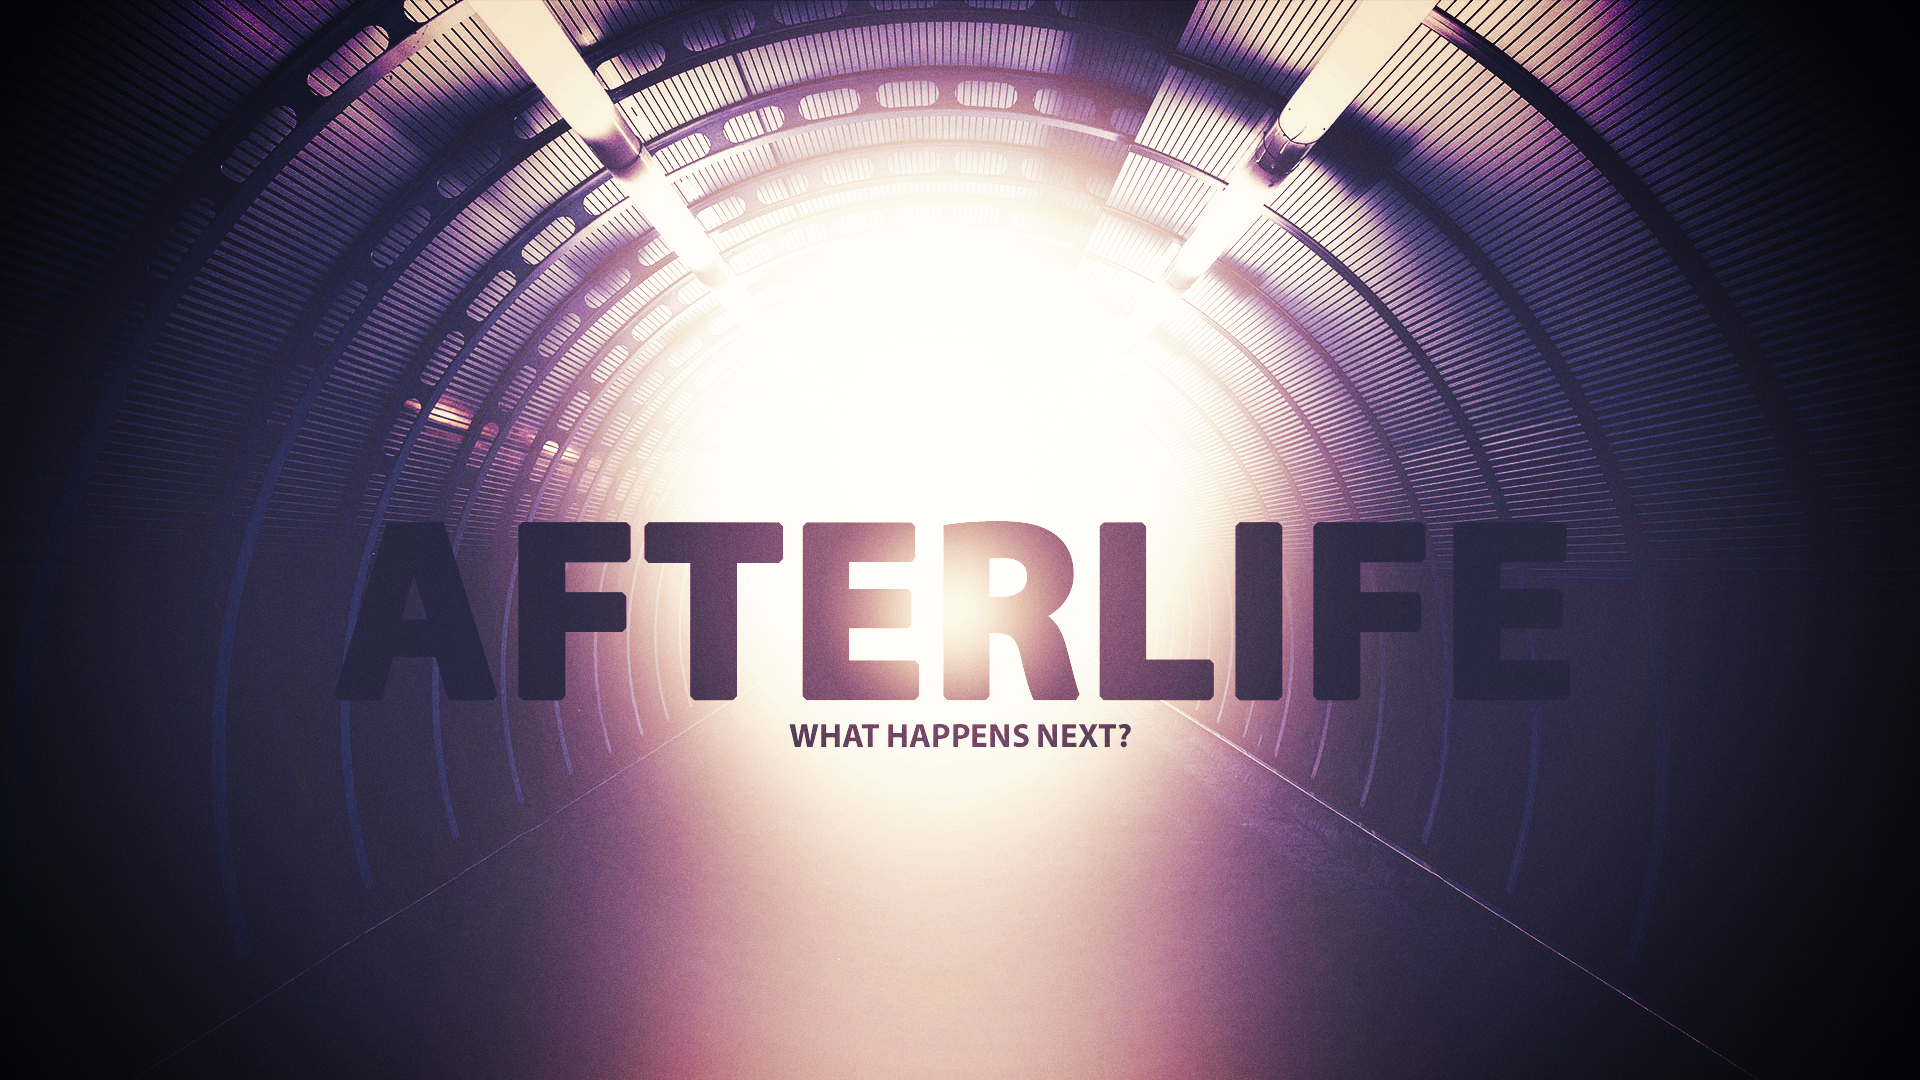 Afterlife image